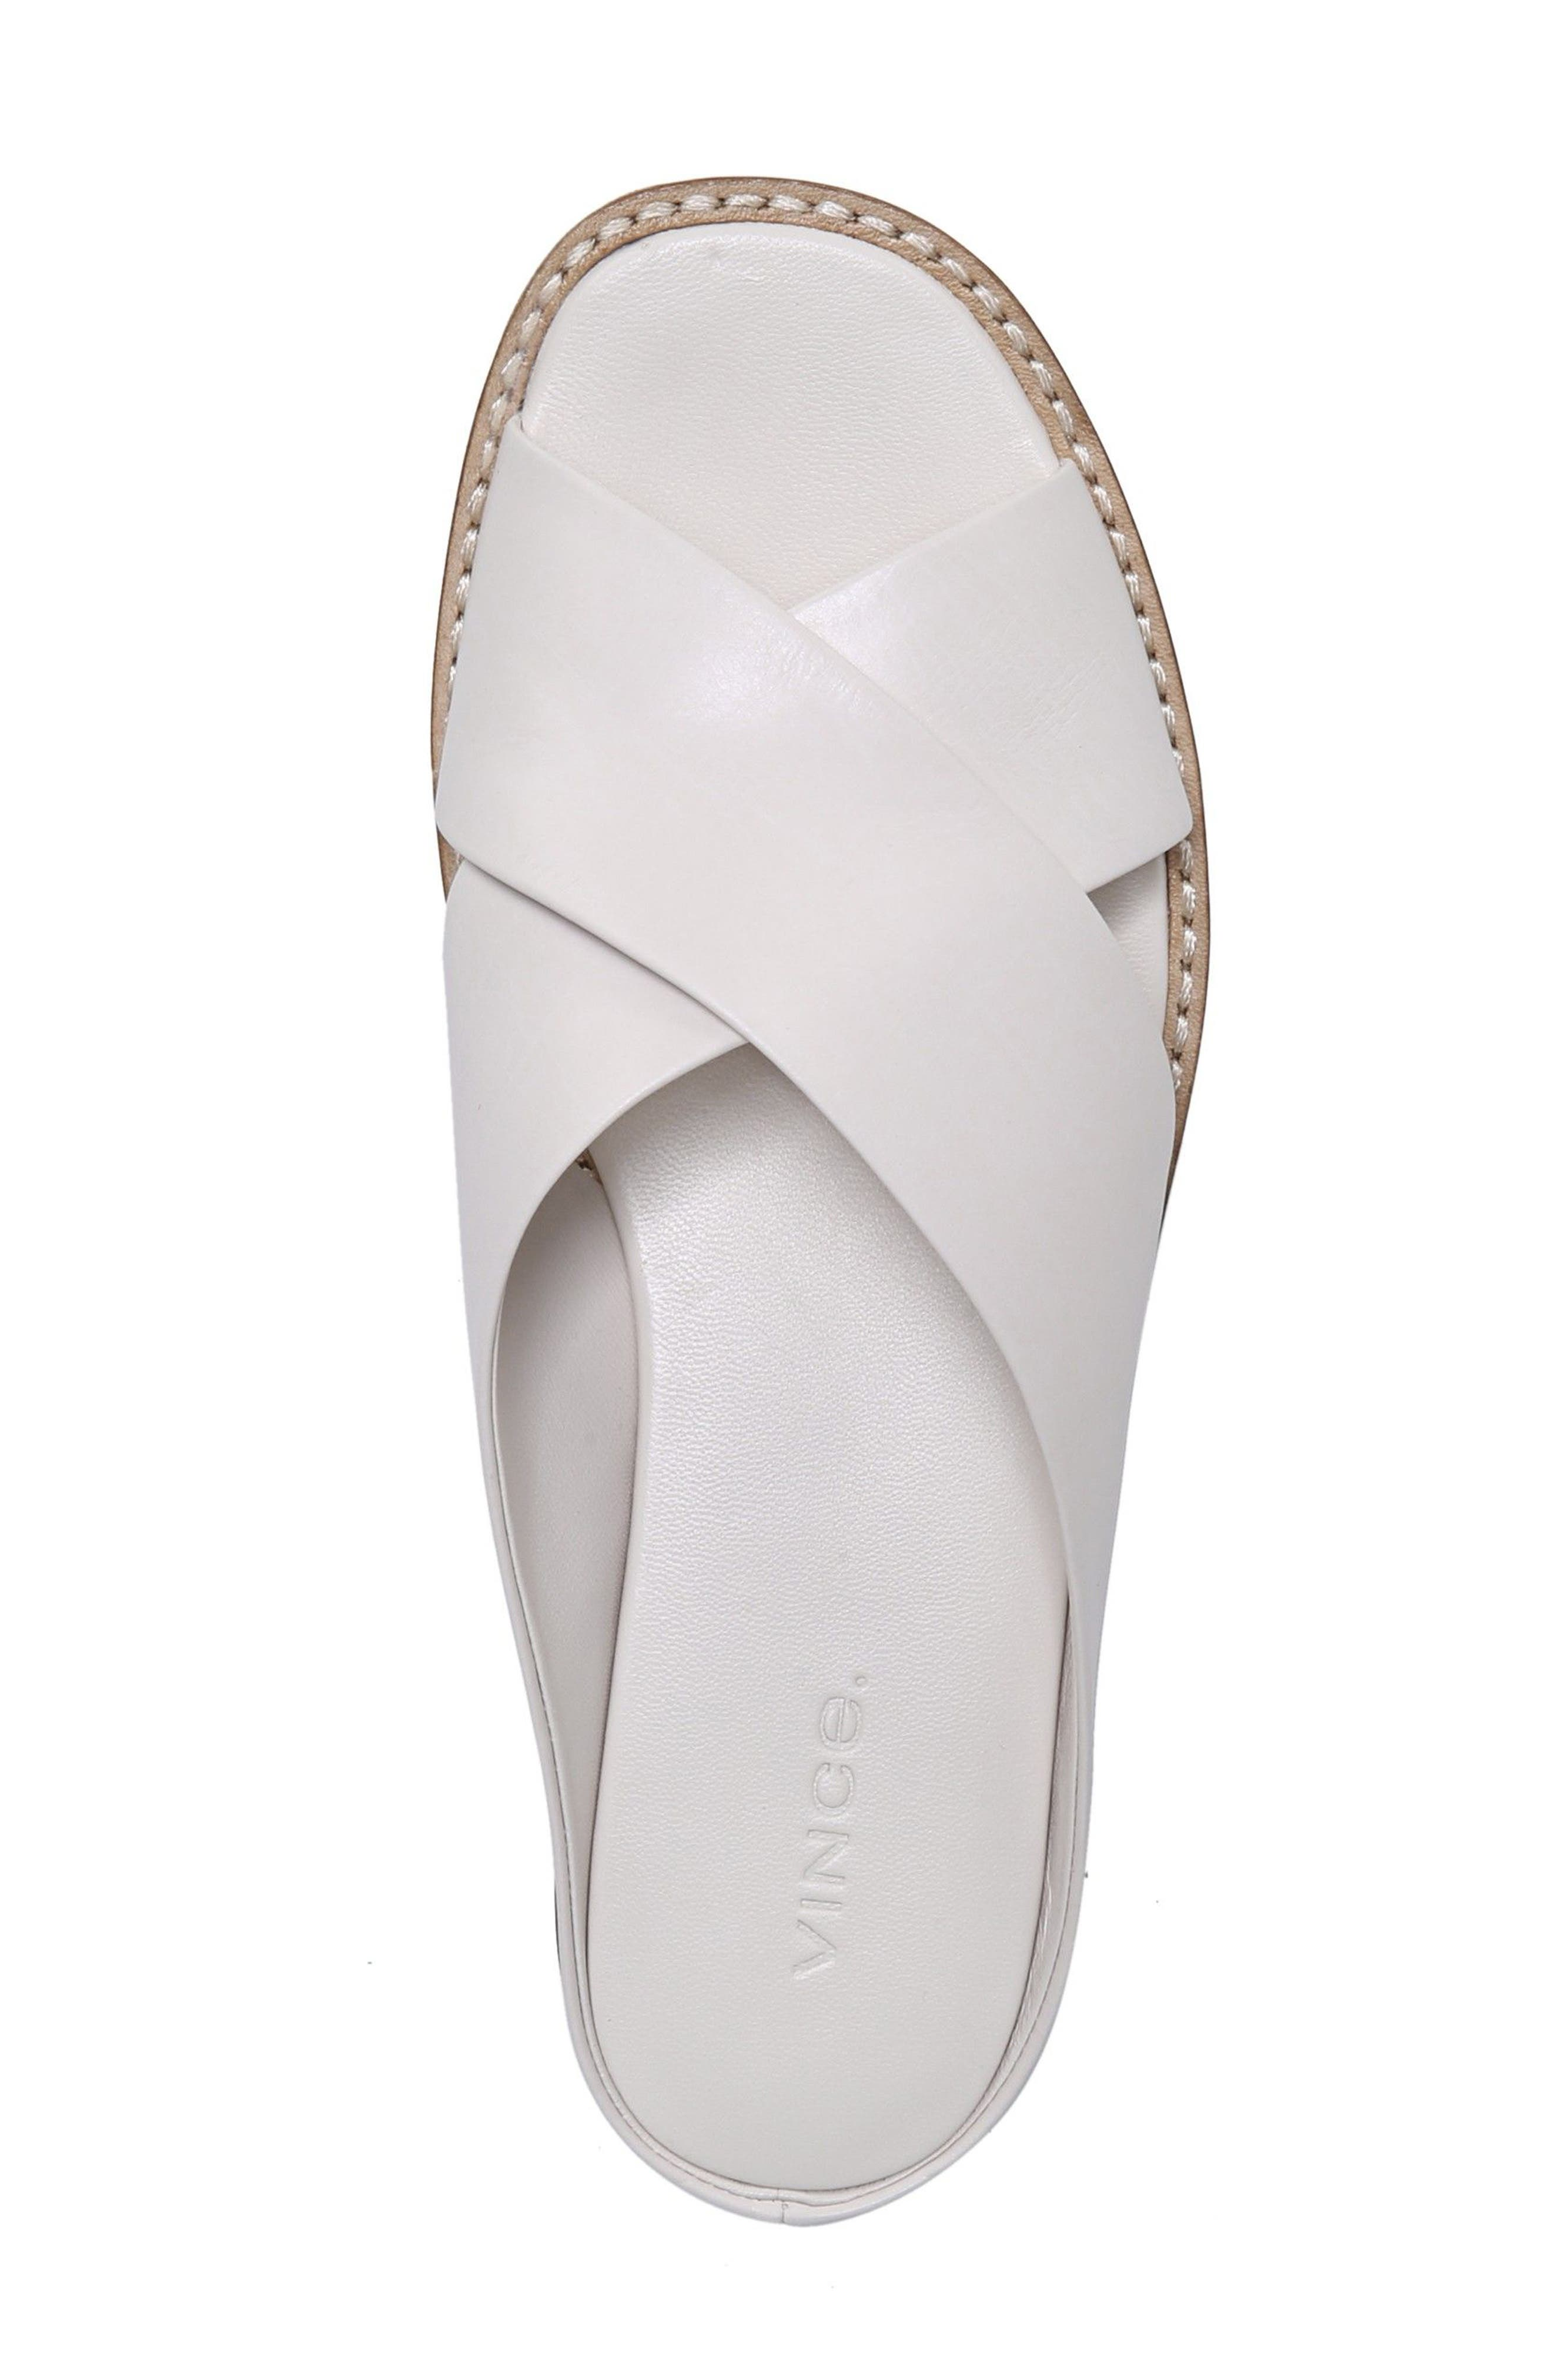 VINCE, Fairley Cross Strap Sandal, Alternate thumbnail 5, color, OFF WHITE LEATHER